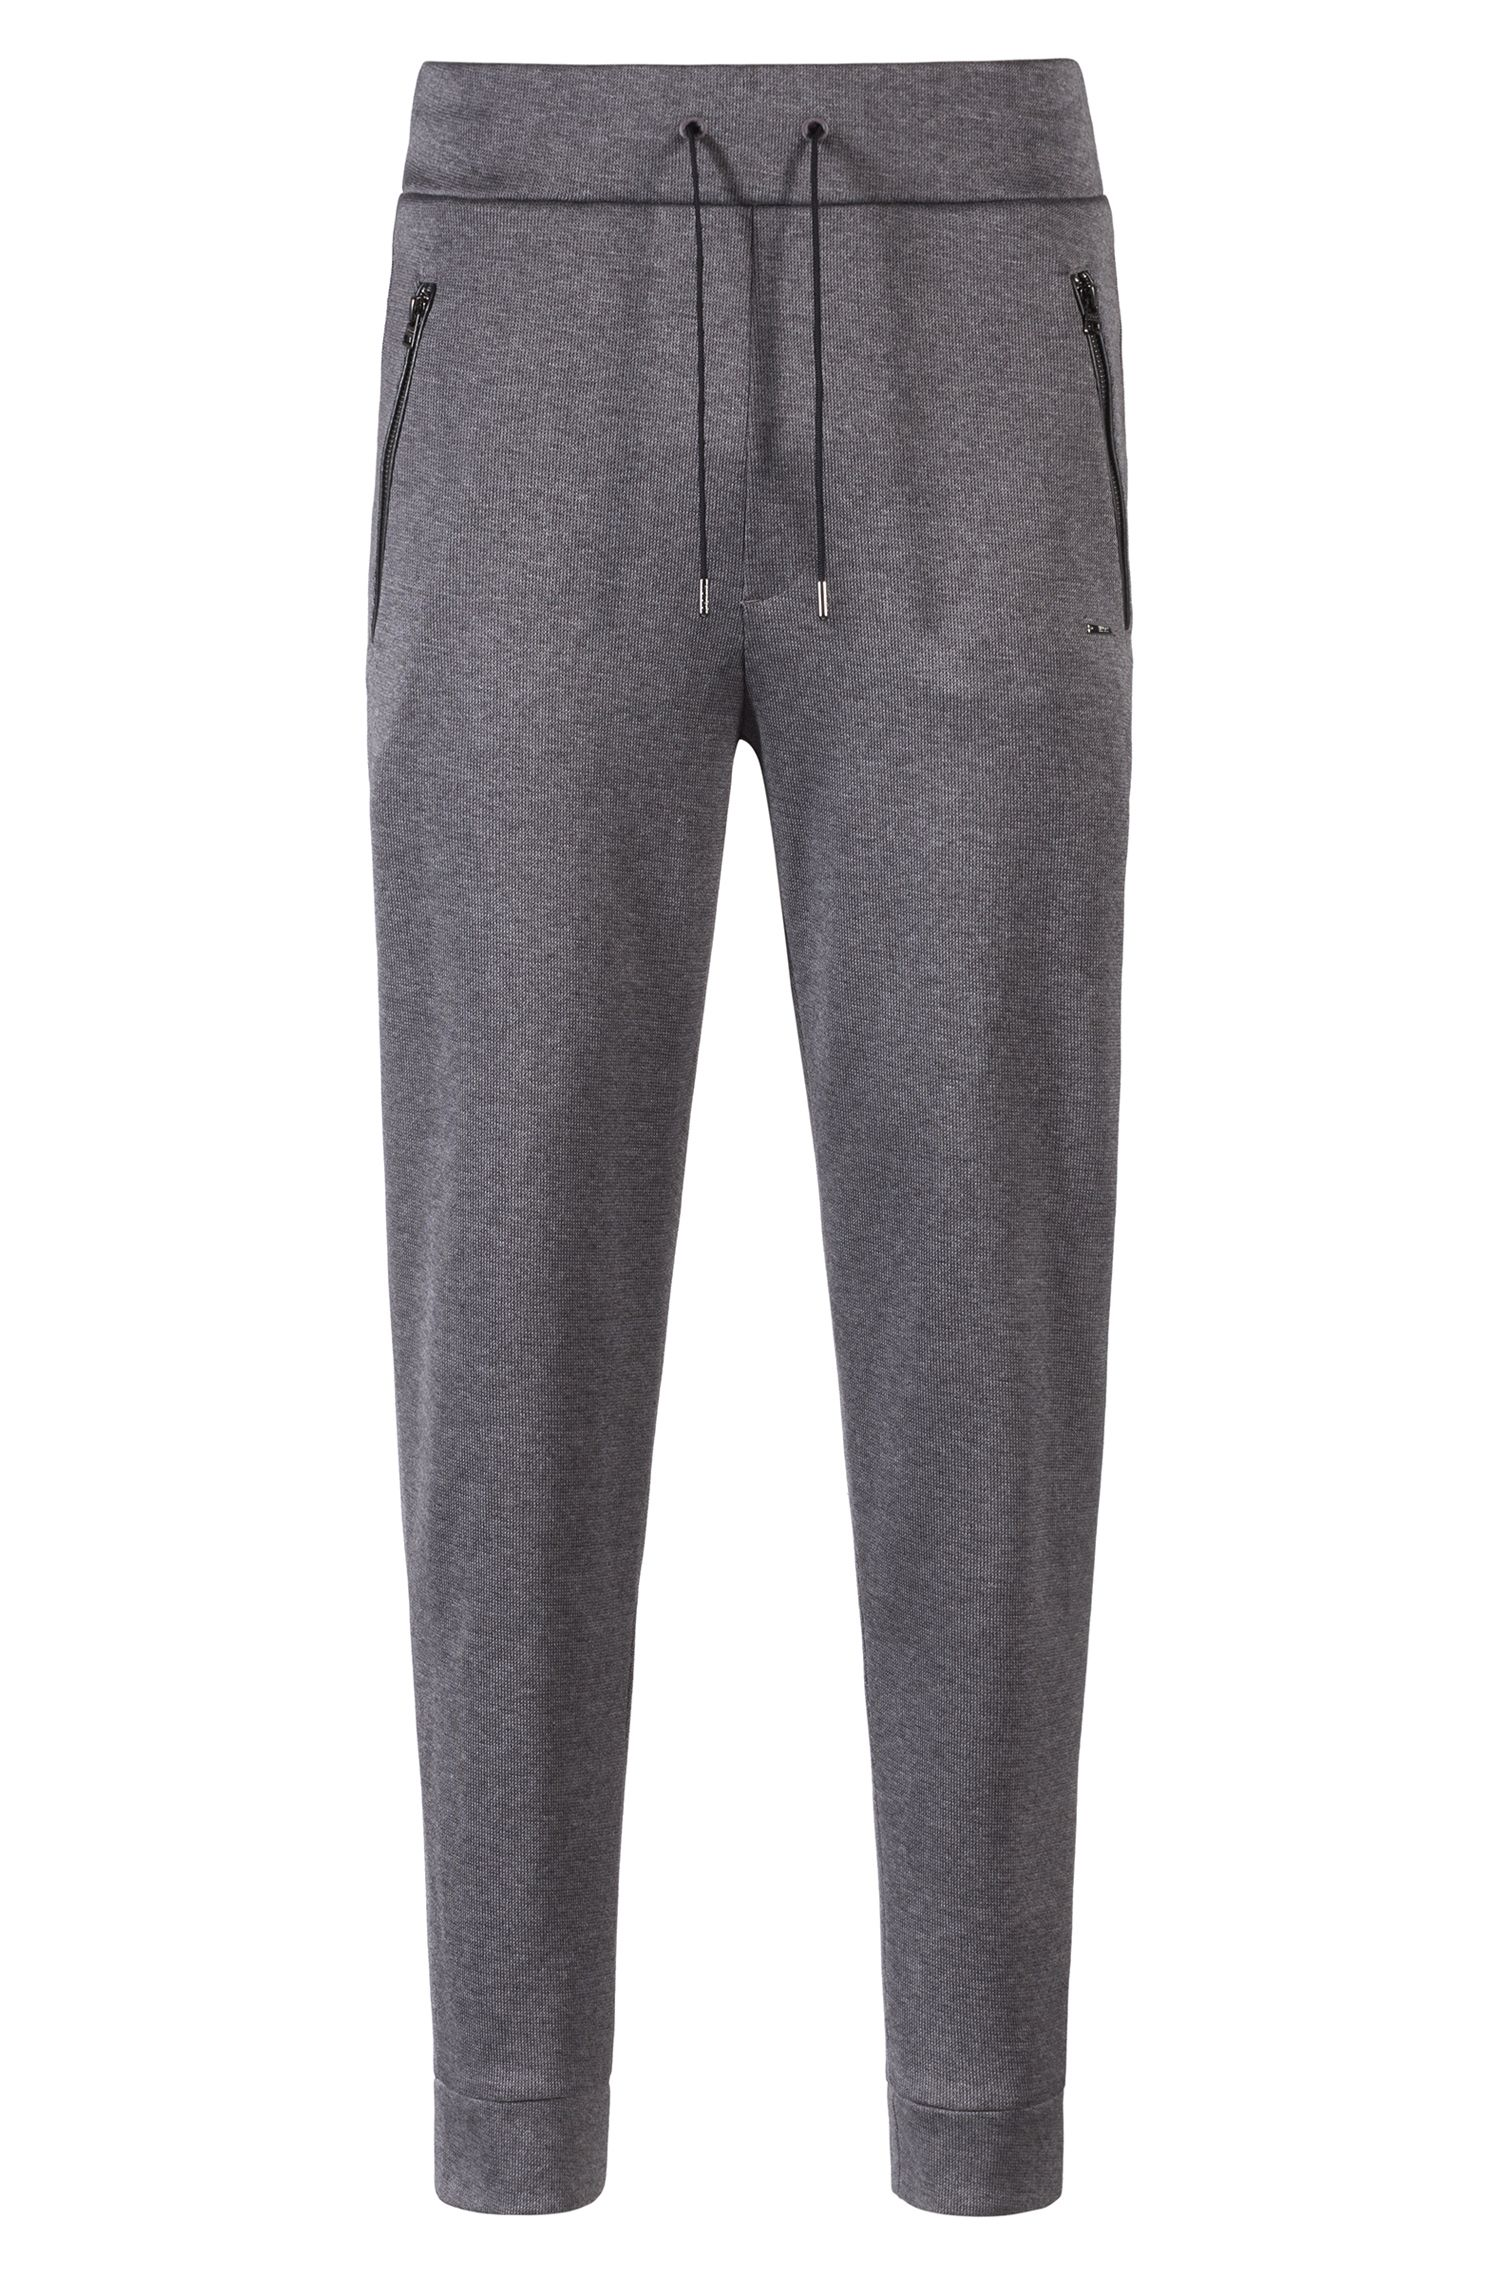 Jersey trousers in French rib with drawstring waist, Grey